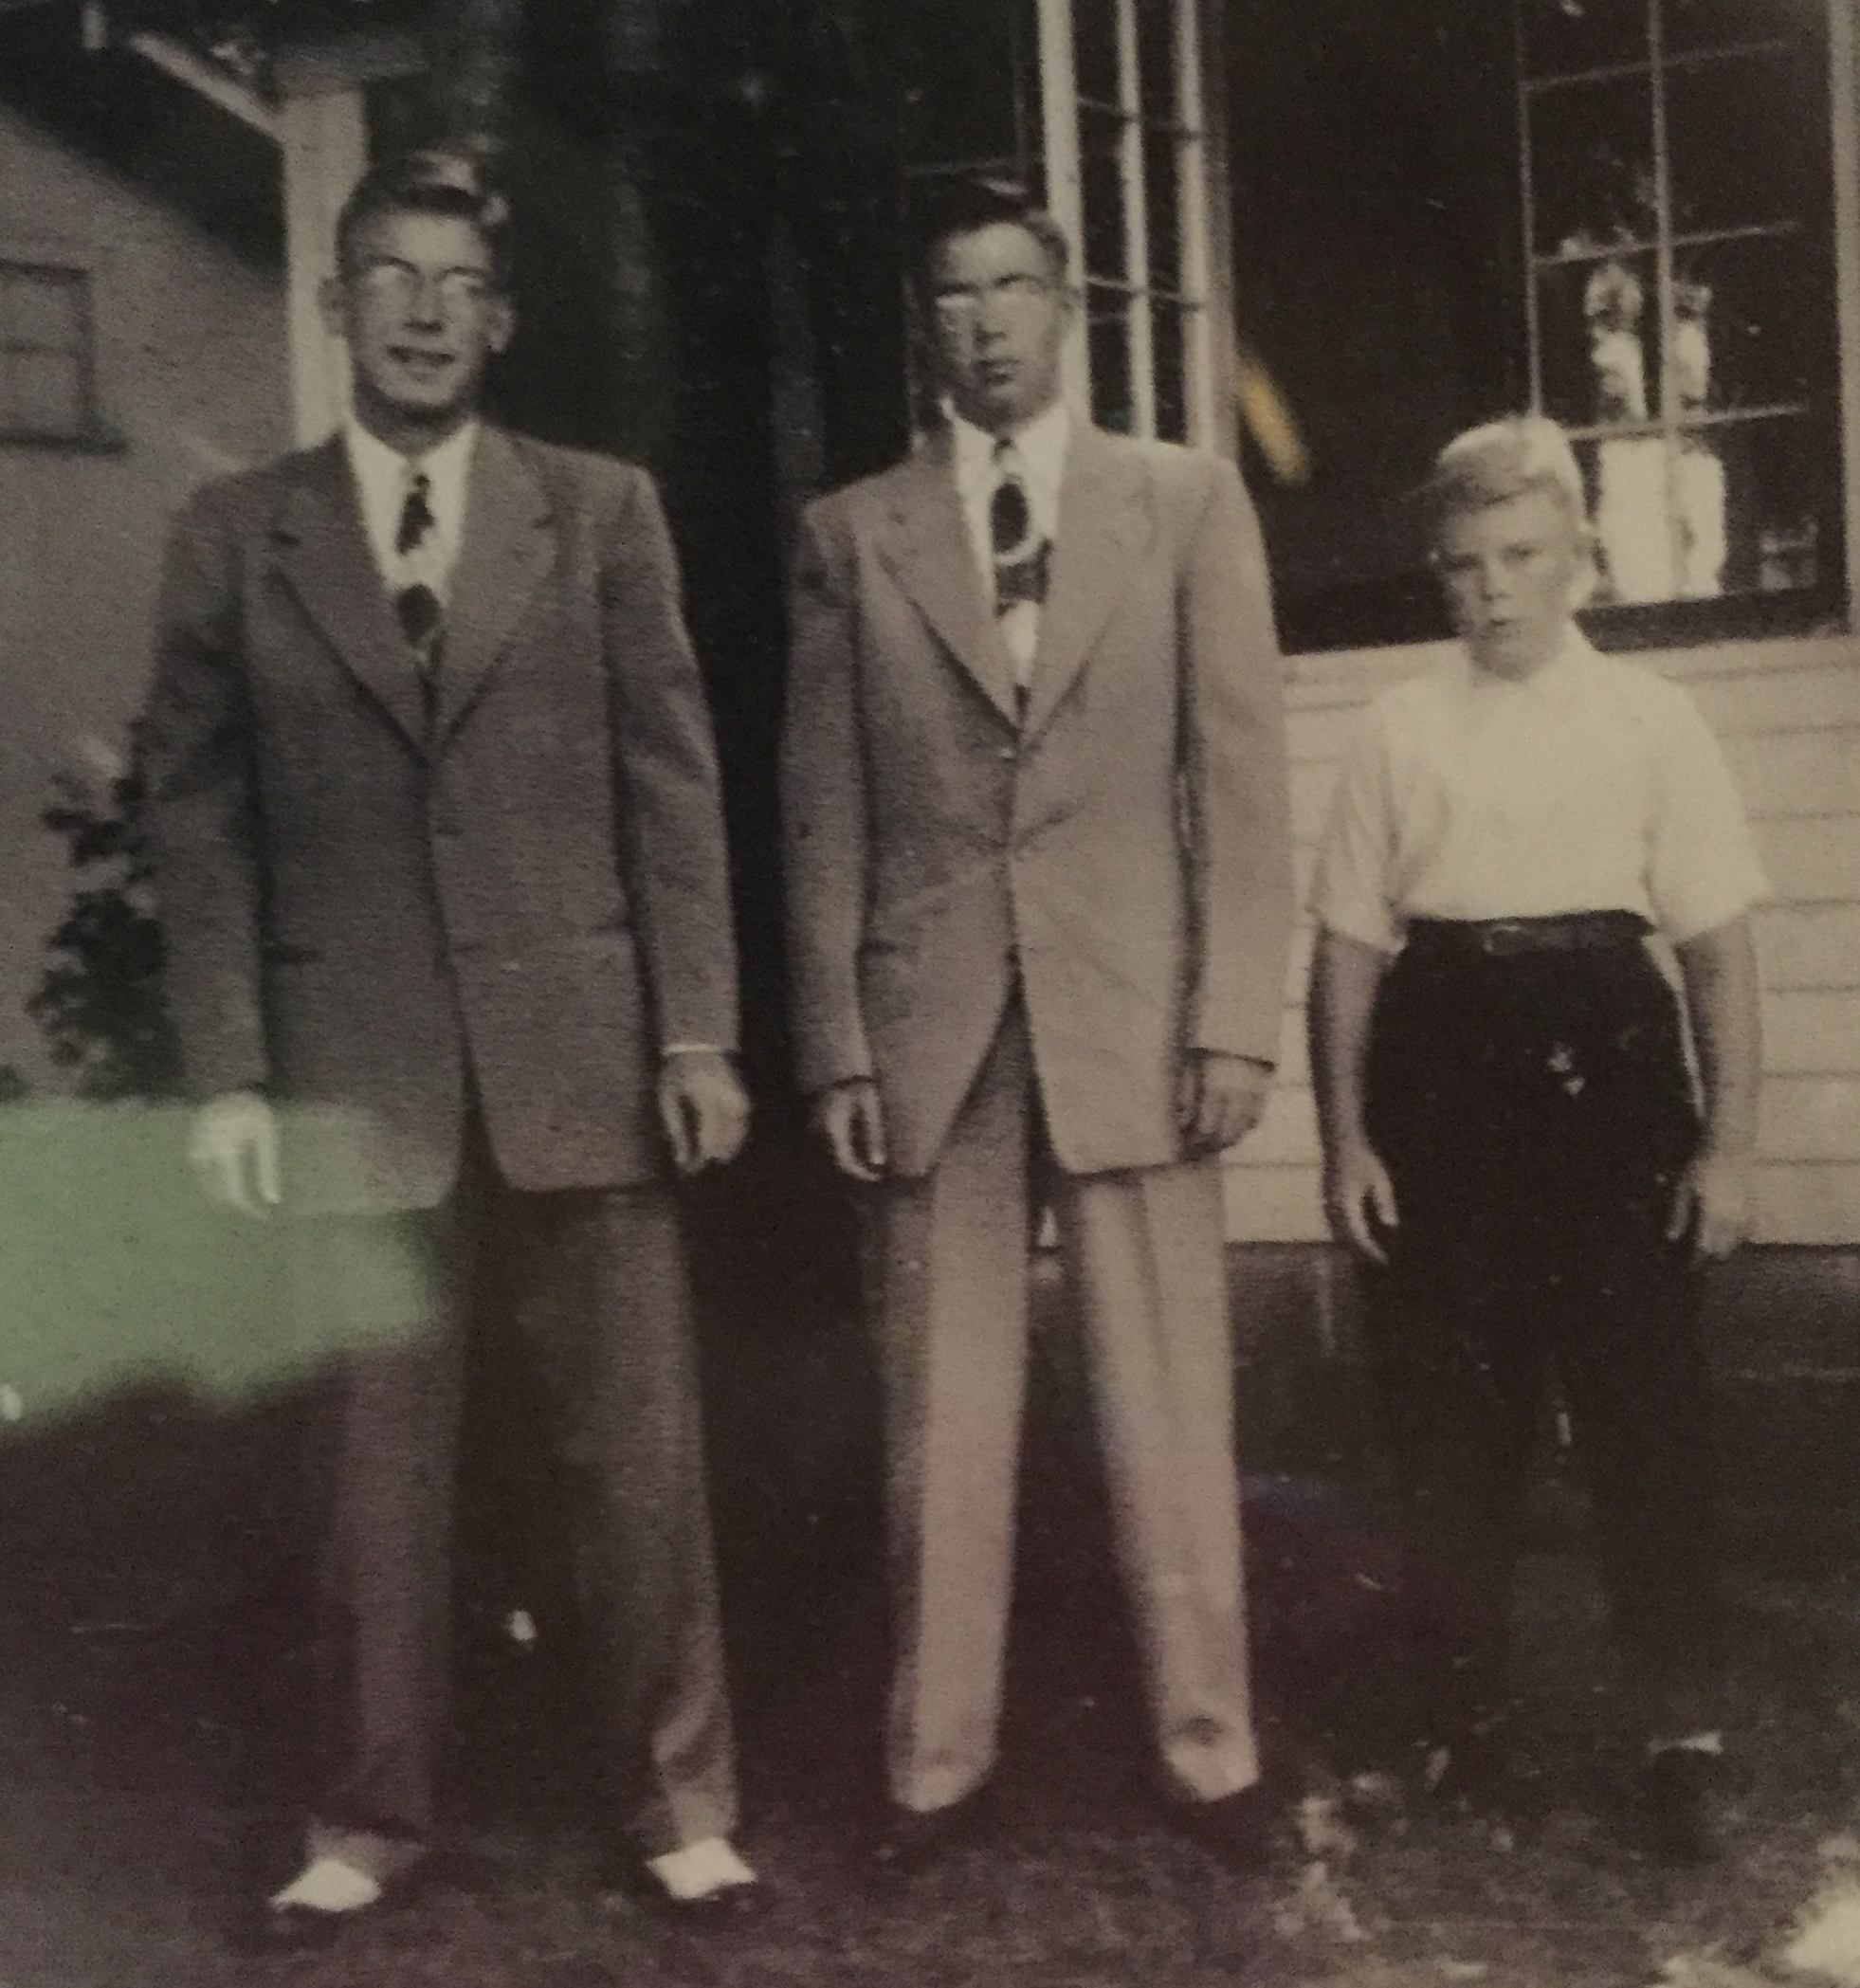 "David D. Dowd, Jr., John C. ""Jack"" Dowd, and James F. Dowd.  David and Jack are looking like some sharp-dressed men. Jim appears downright pugnacious. Family snapshot taken by David D. Dowd, Sr. or Martha Combrink Dowd, late 1940s. Shady Shores Resort, Dowagiac, Michigan. My cousin Deb Clinebell (née Dowd, daughter to Jim and Betty) sent this to me yesterday via a text message. I think she re-photographed a snapshot in an album."